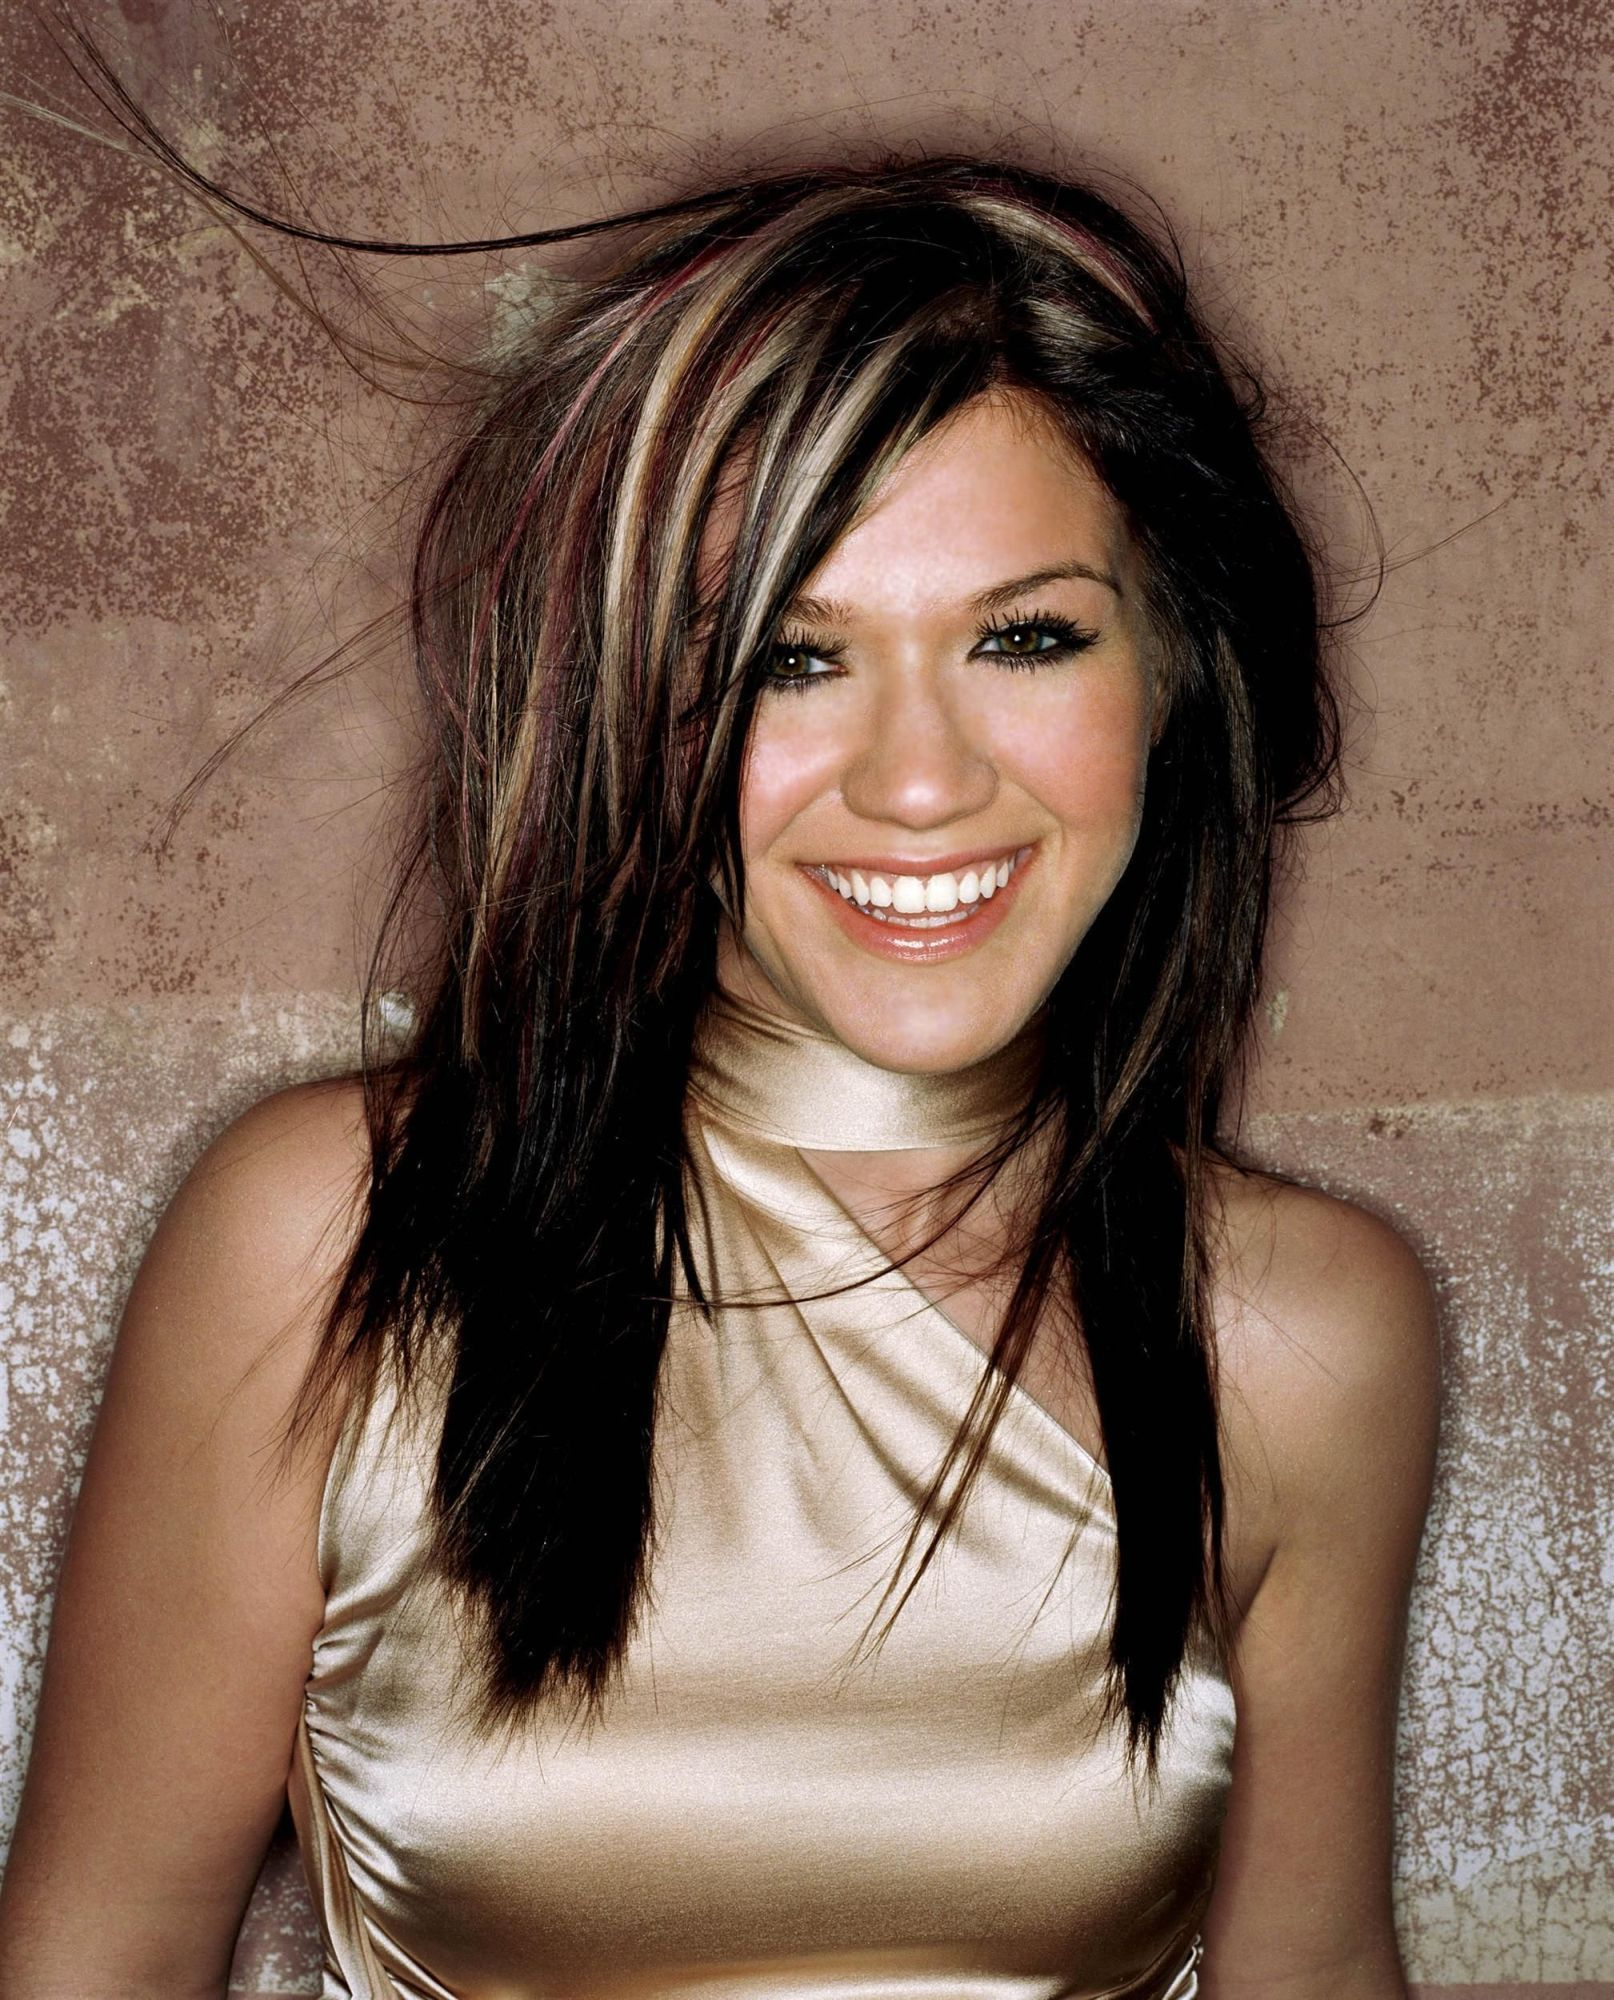 I Love Kelly Clarkson Her Highlights In This Picturelove Hair Color